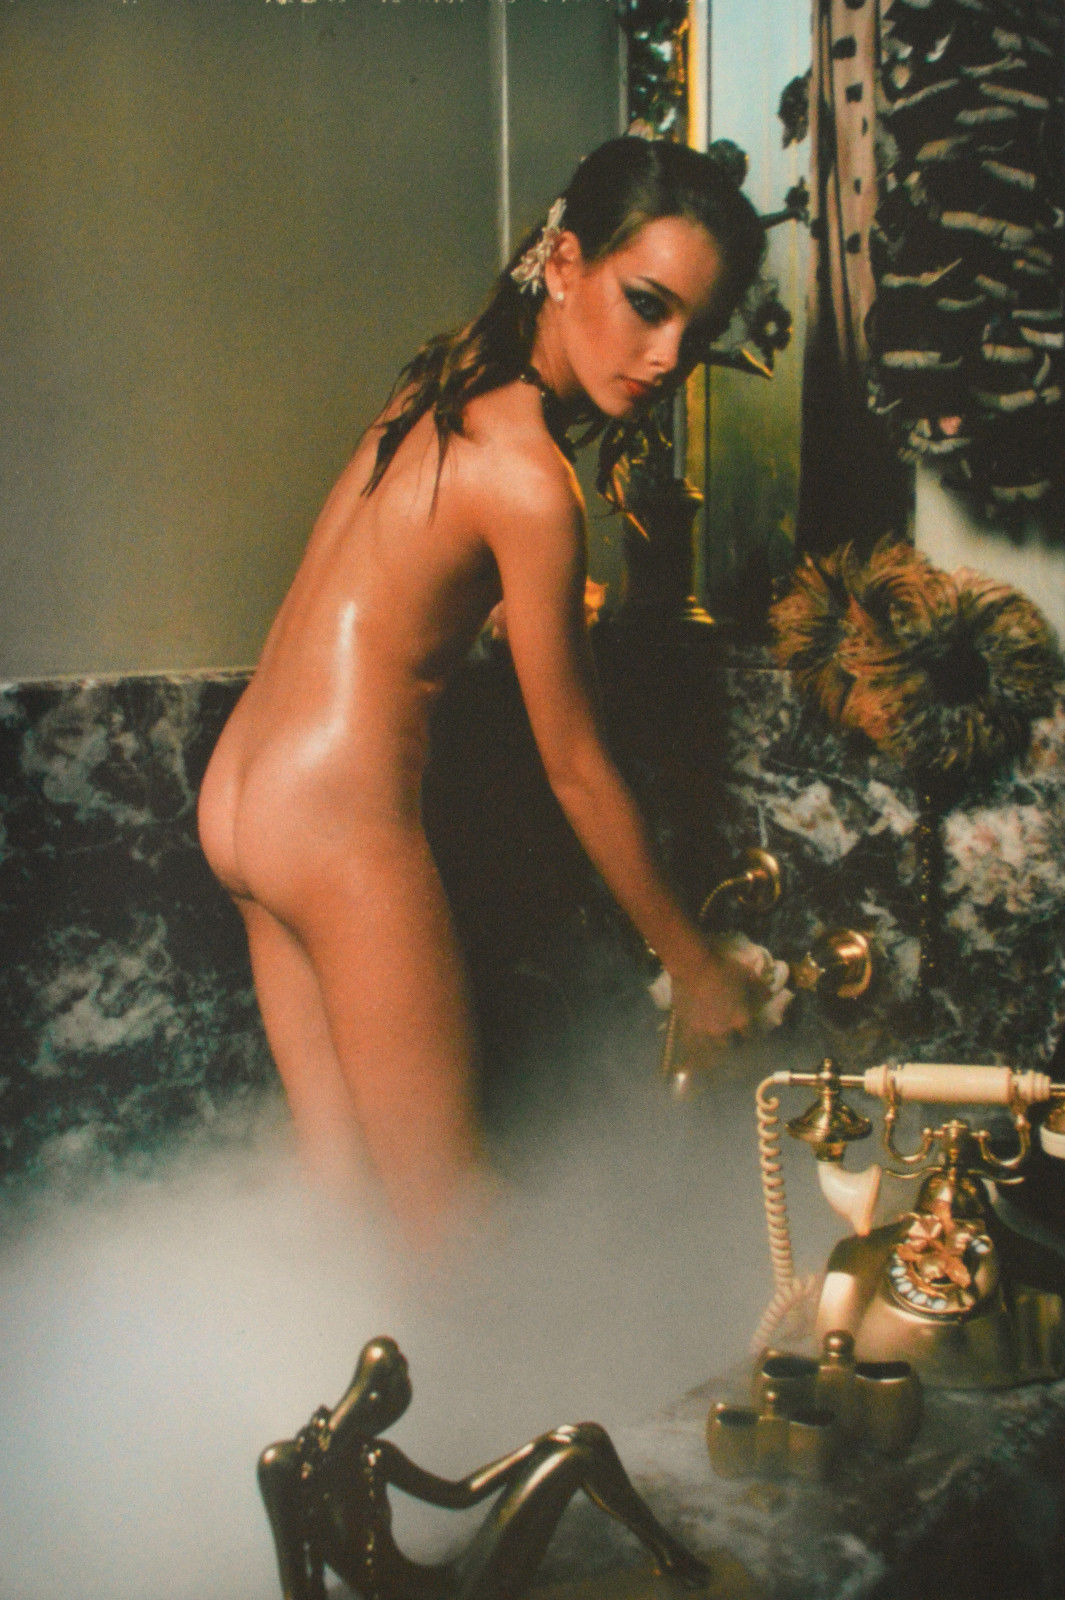 Fantasy)))) Free brooke shields nude was specially